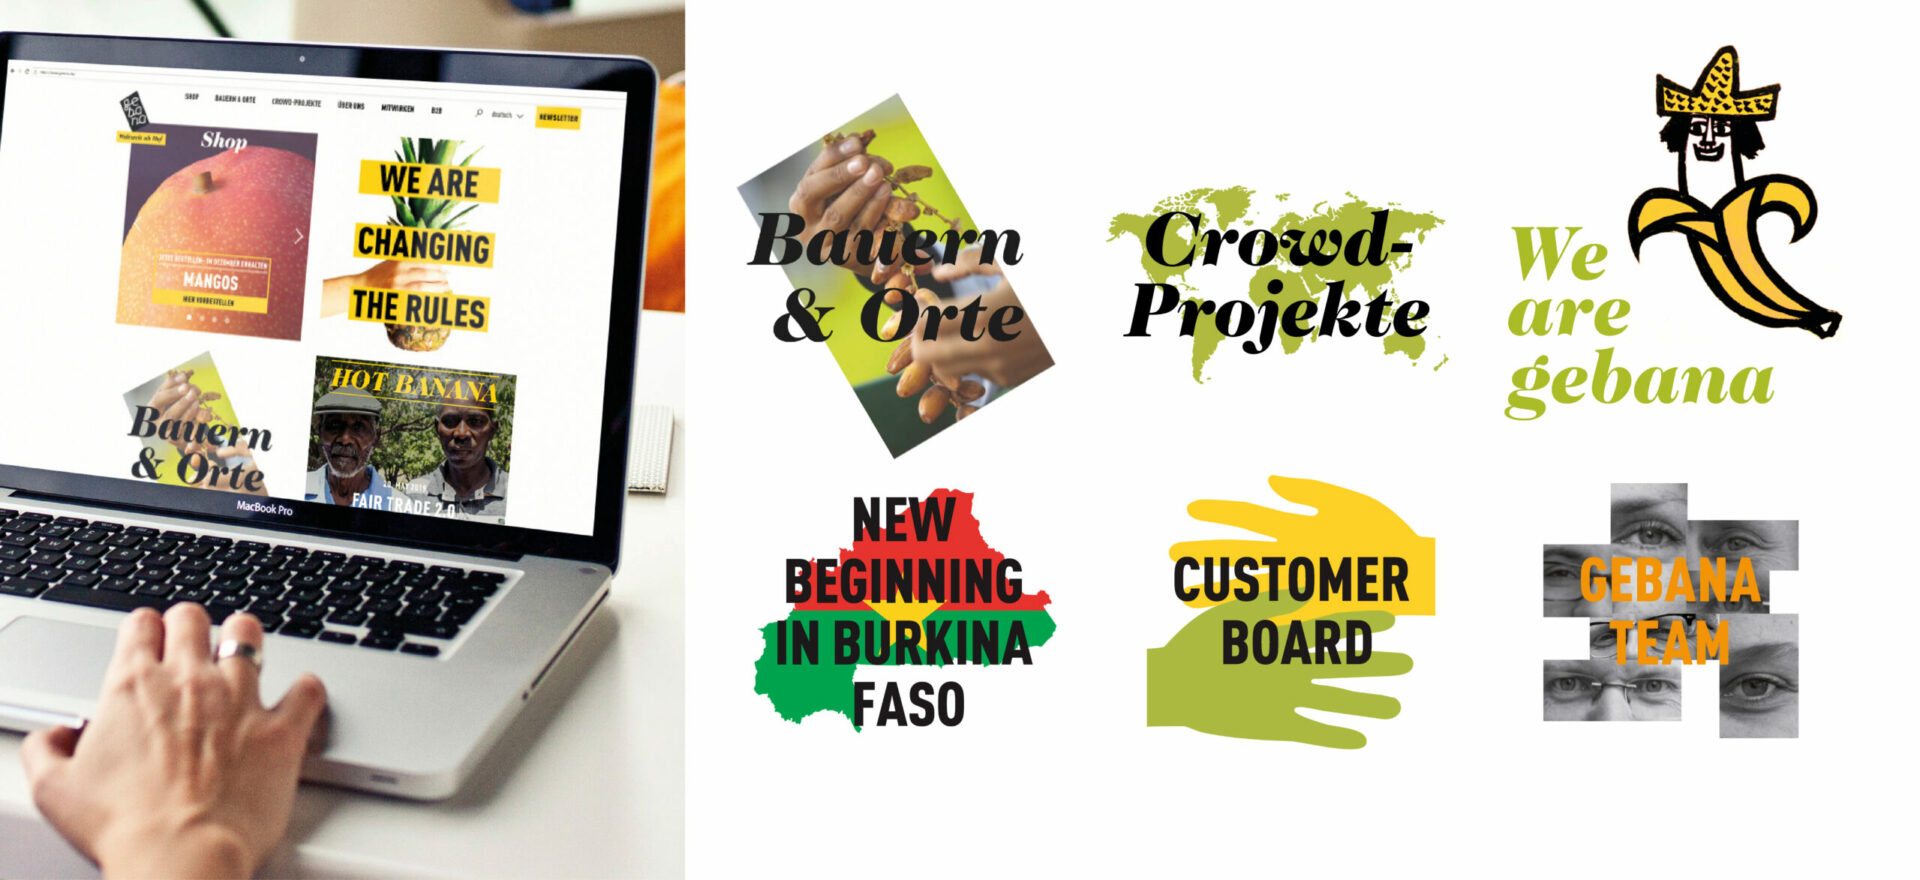 Website of Gebana on a laptop showing details of typography, titles, images and texts detailing composition of the branding and different logos used on the sections of the site.